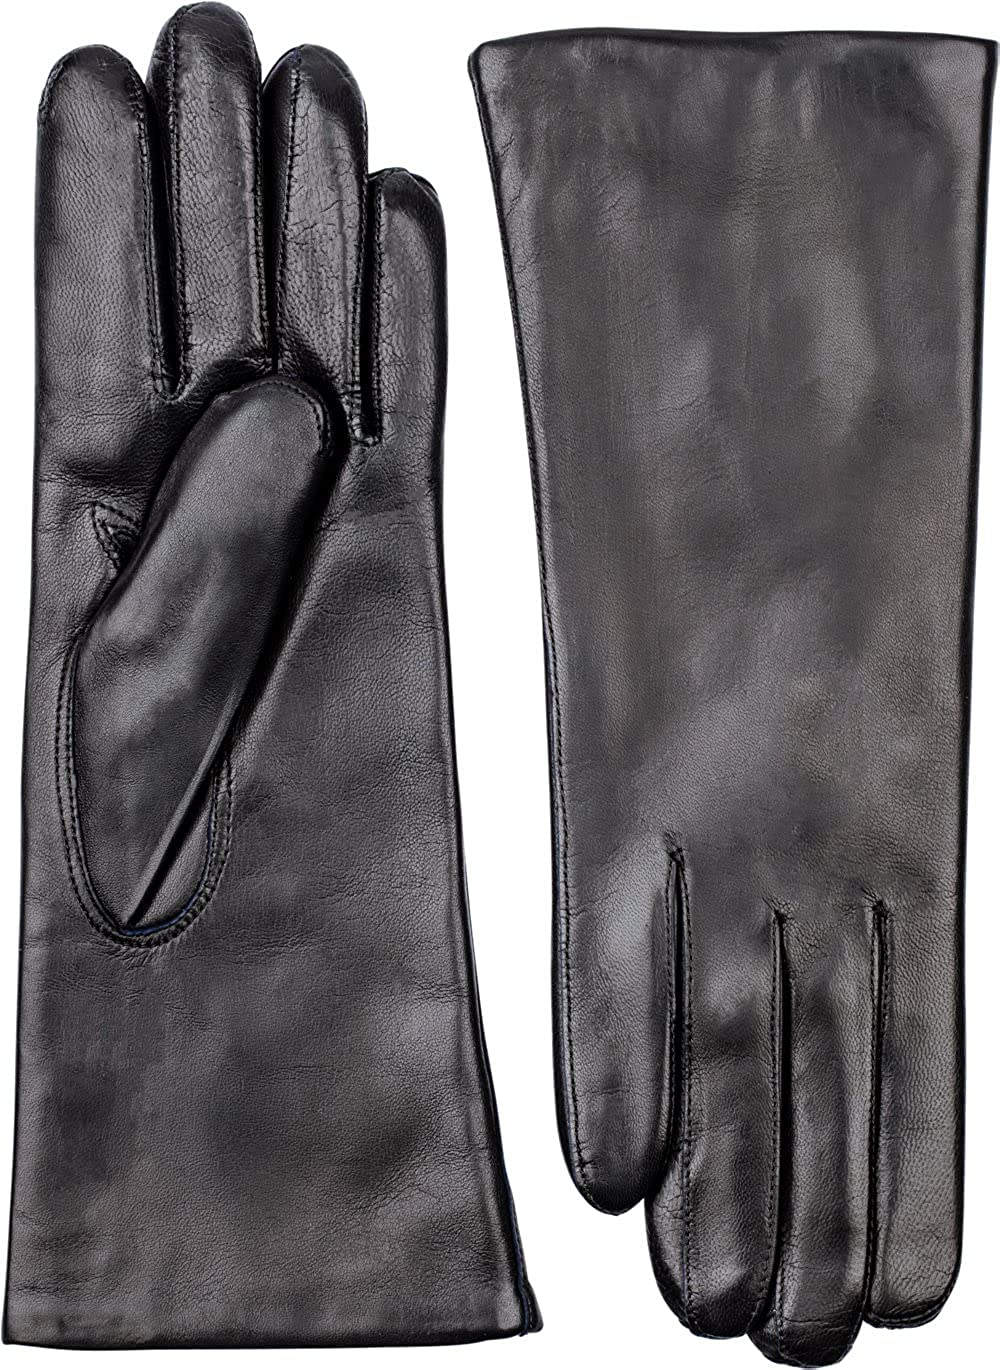 Hestra Cashmere Lined Gloves - Hairsheep Leather Pique 3 Btn Cashmere Wool Lined - Insulated Womens Gloves